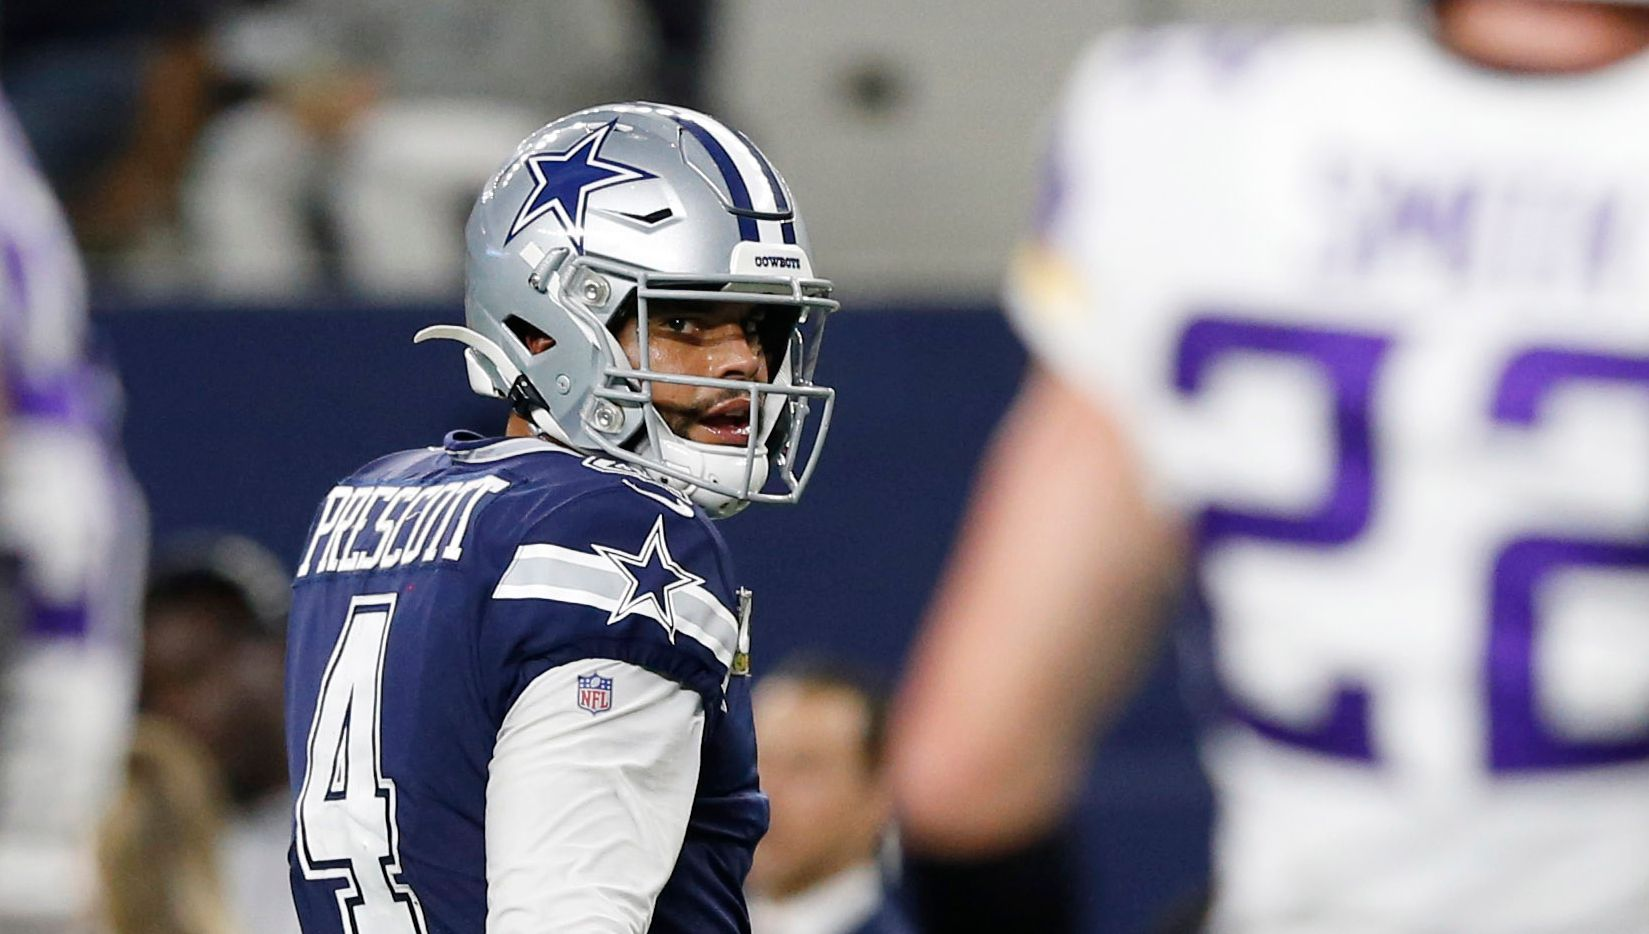 FILE — Dallas Cowboys quarterback Dak Prescott (4) is seen during a game at AT&T Stadium in Arlington, Texas on Sunday, November 10, 2019. Dallas can place the franchise tag on Prescott as early as Tuesday, but has until March 9 to try to reach a deal to secure Prescott's services long-term.